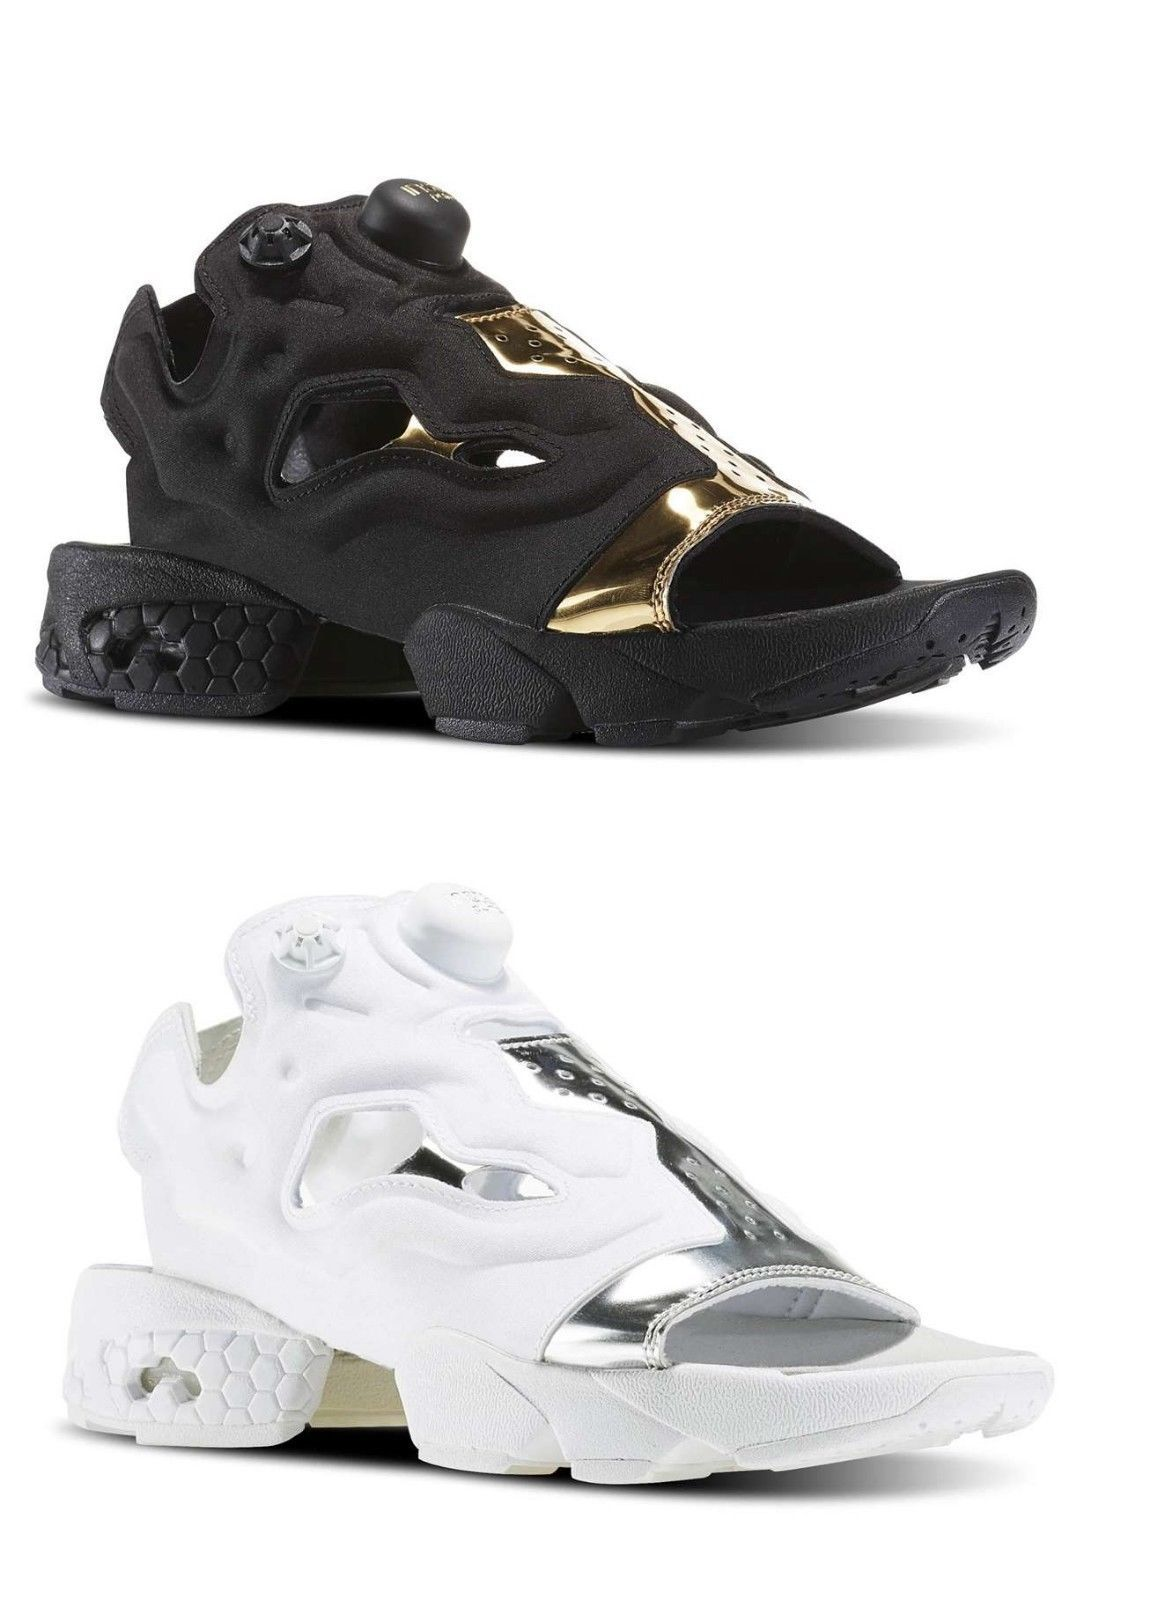 d0a7801393c1 REEBOK NEW Women INSTAPUMP Fury Mag Black Gold Comfort Sandal Slip On  Sneakers